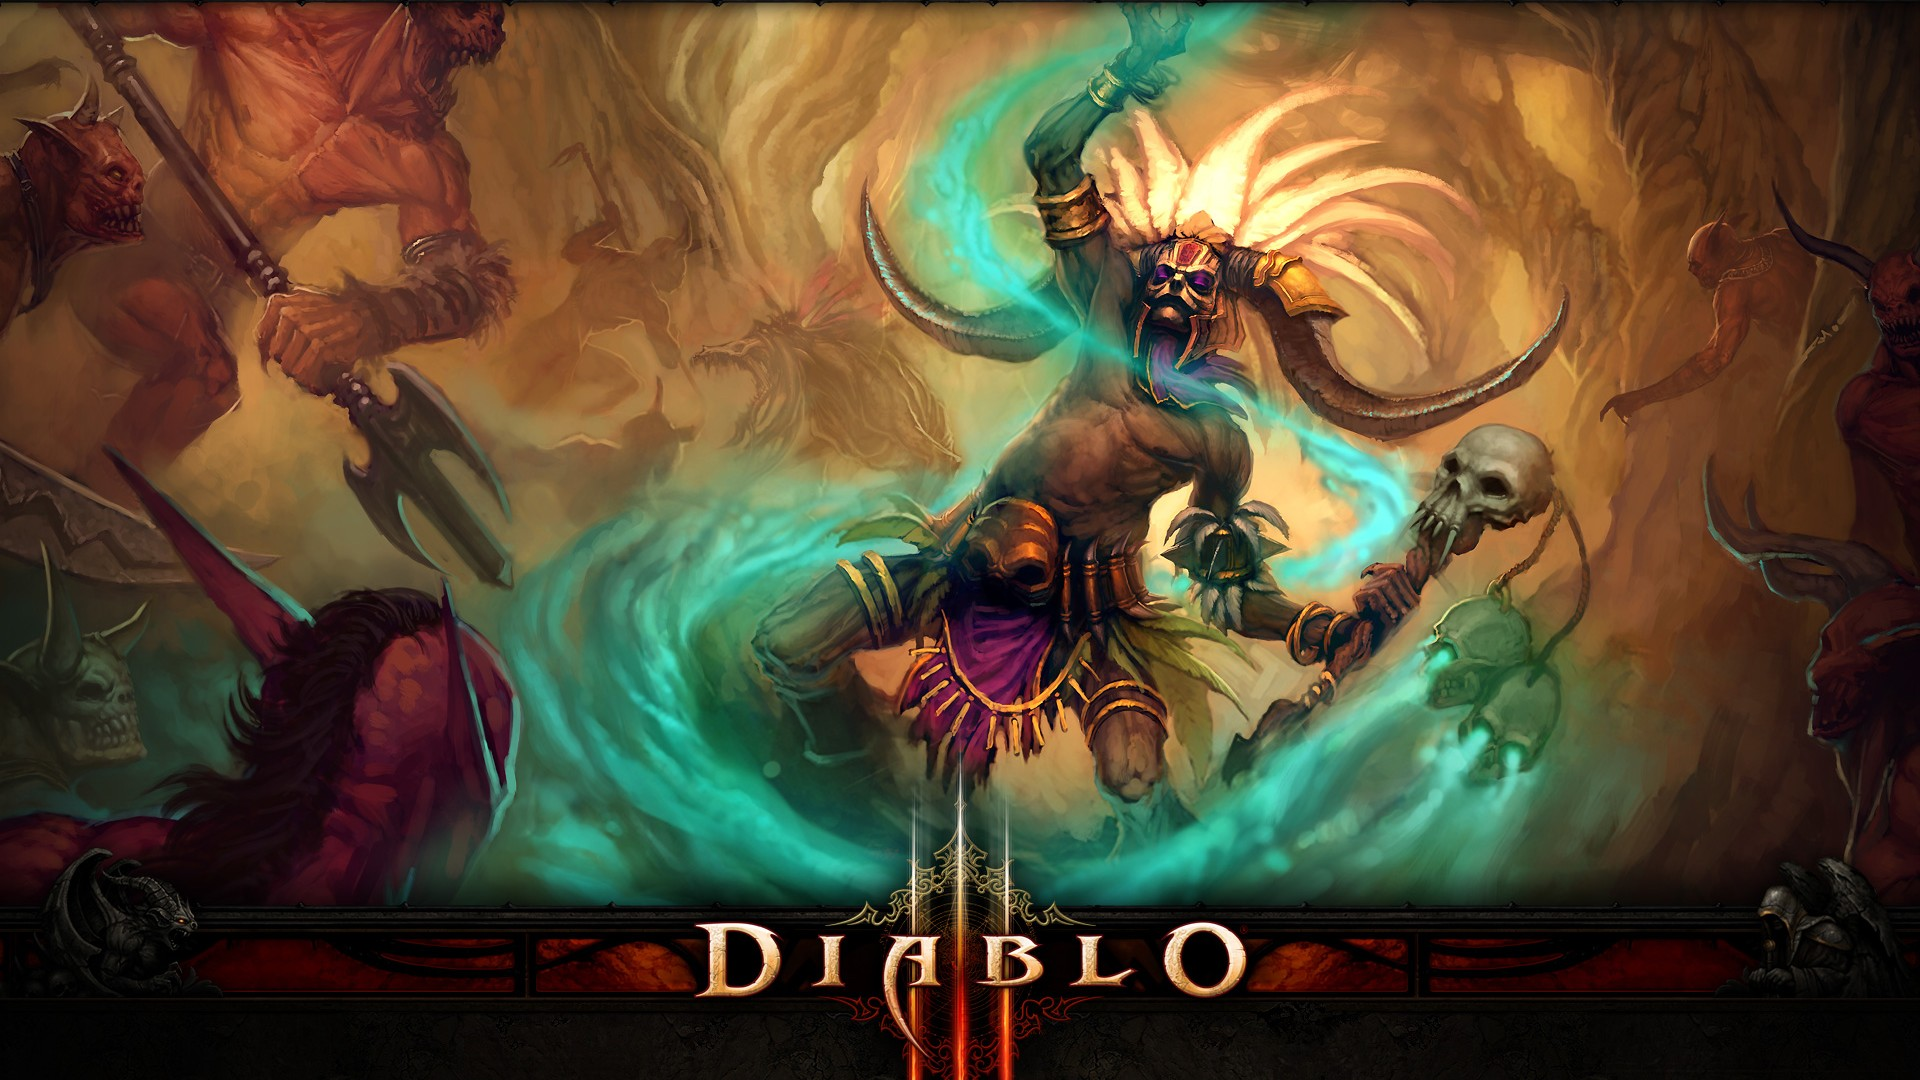 Diablo 3 Wallpaper 8wallpapers